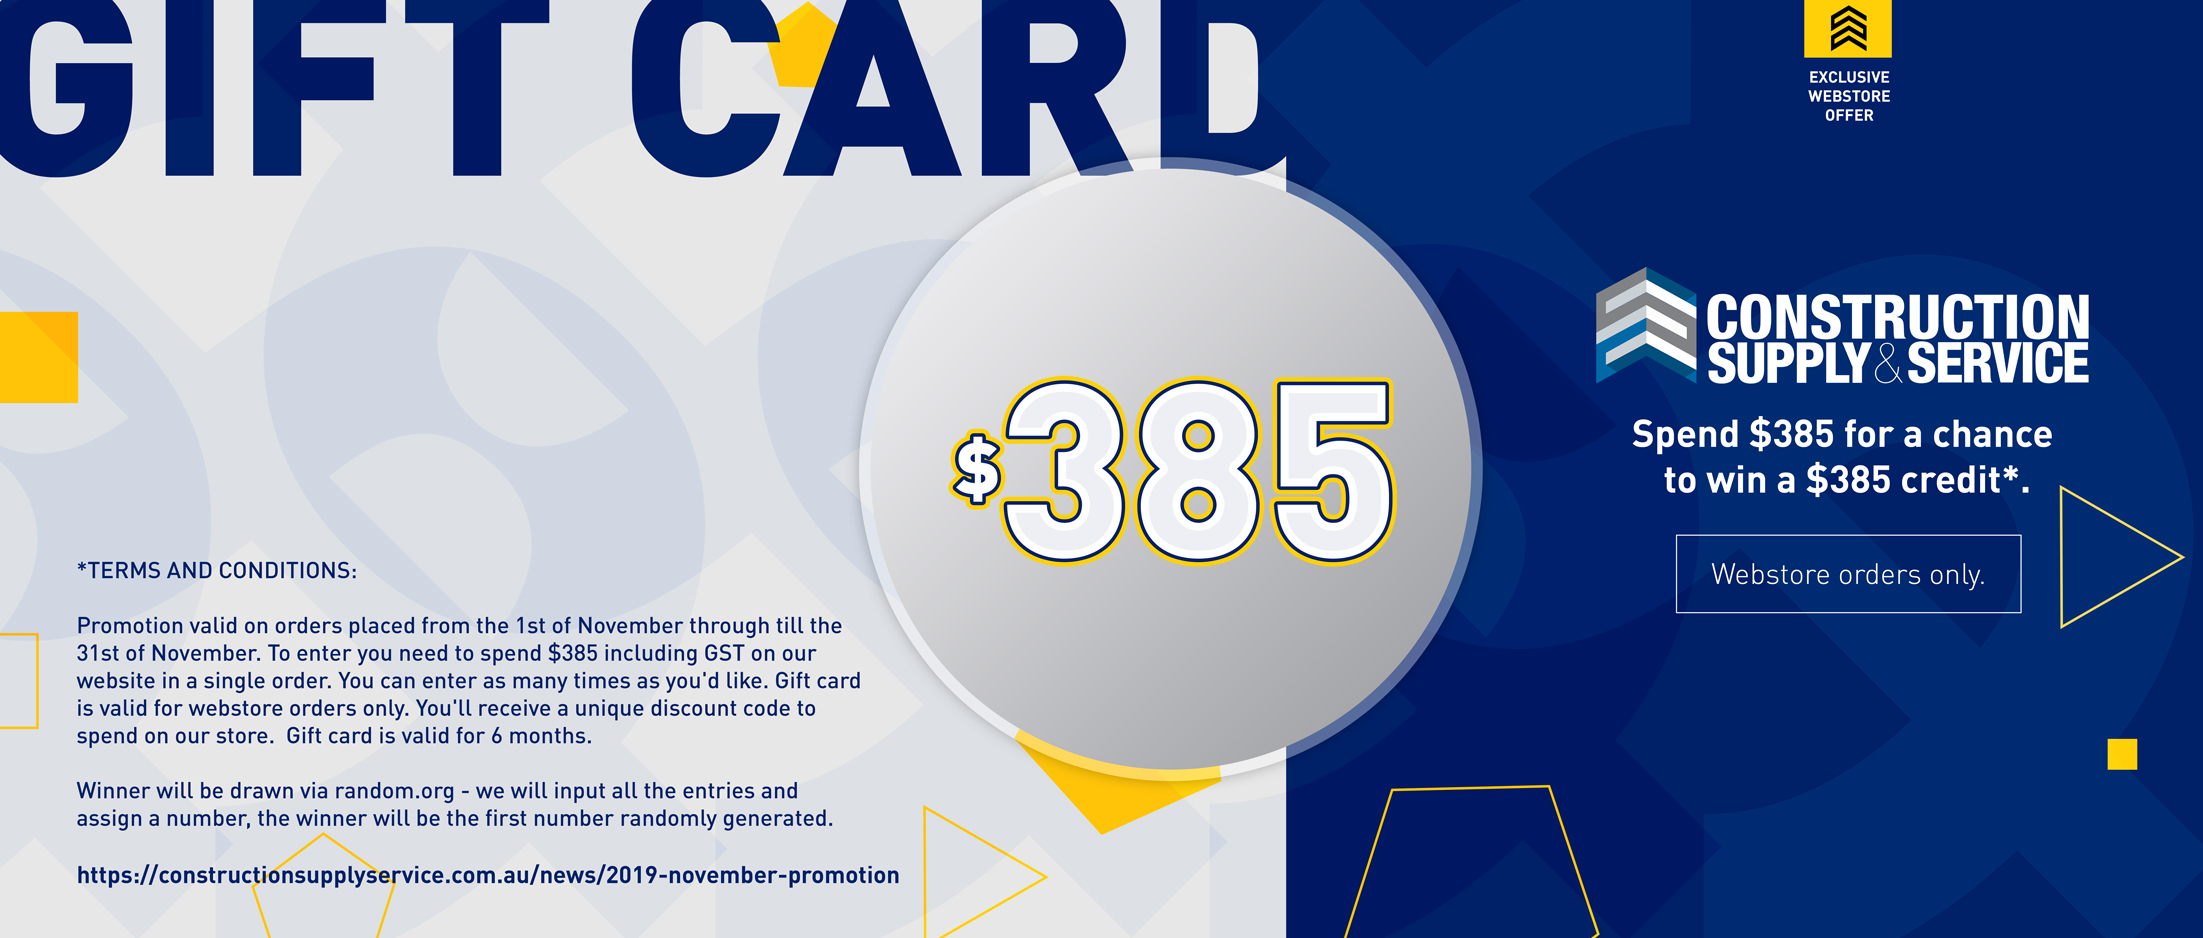 SPEND $385 AND GO INTO THE DRAW TO WIN A $385 GIFT CARD! - NOVEMBER WEBSTORE PROMOTION